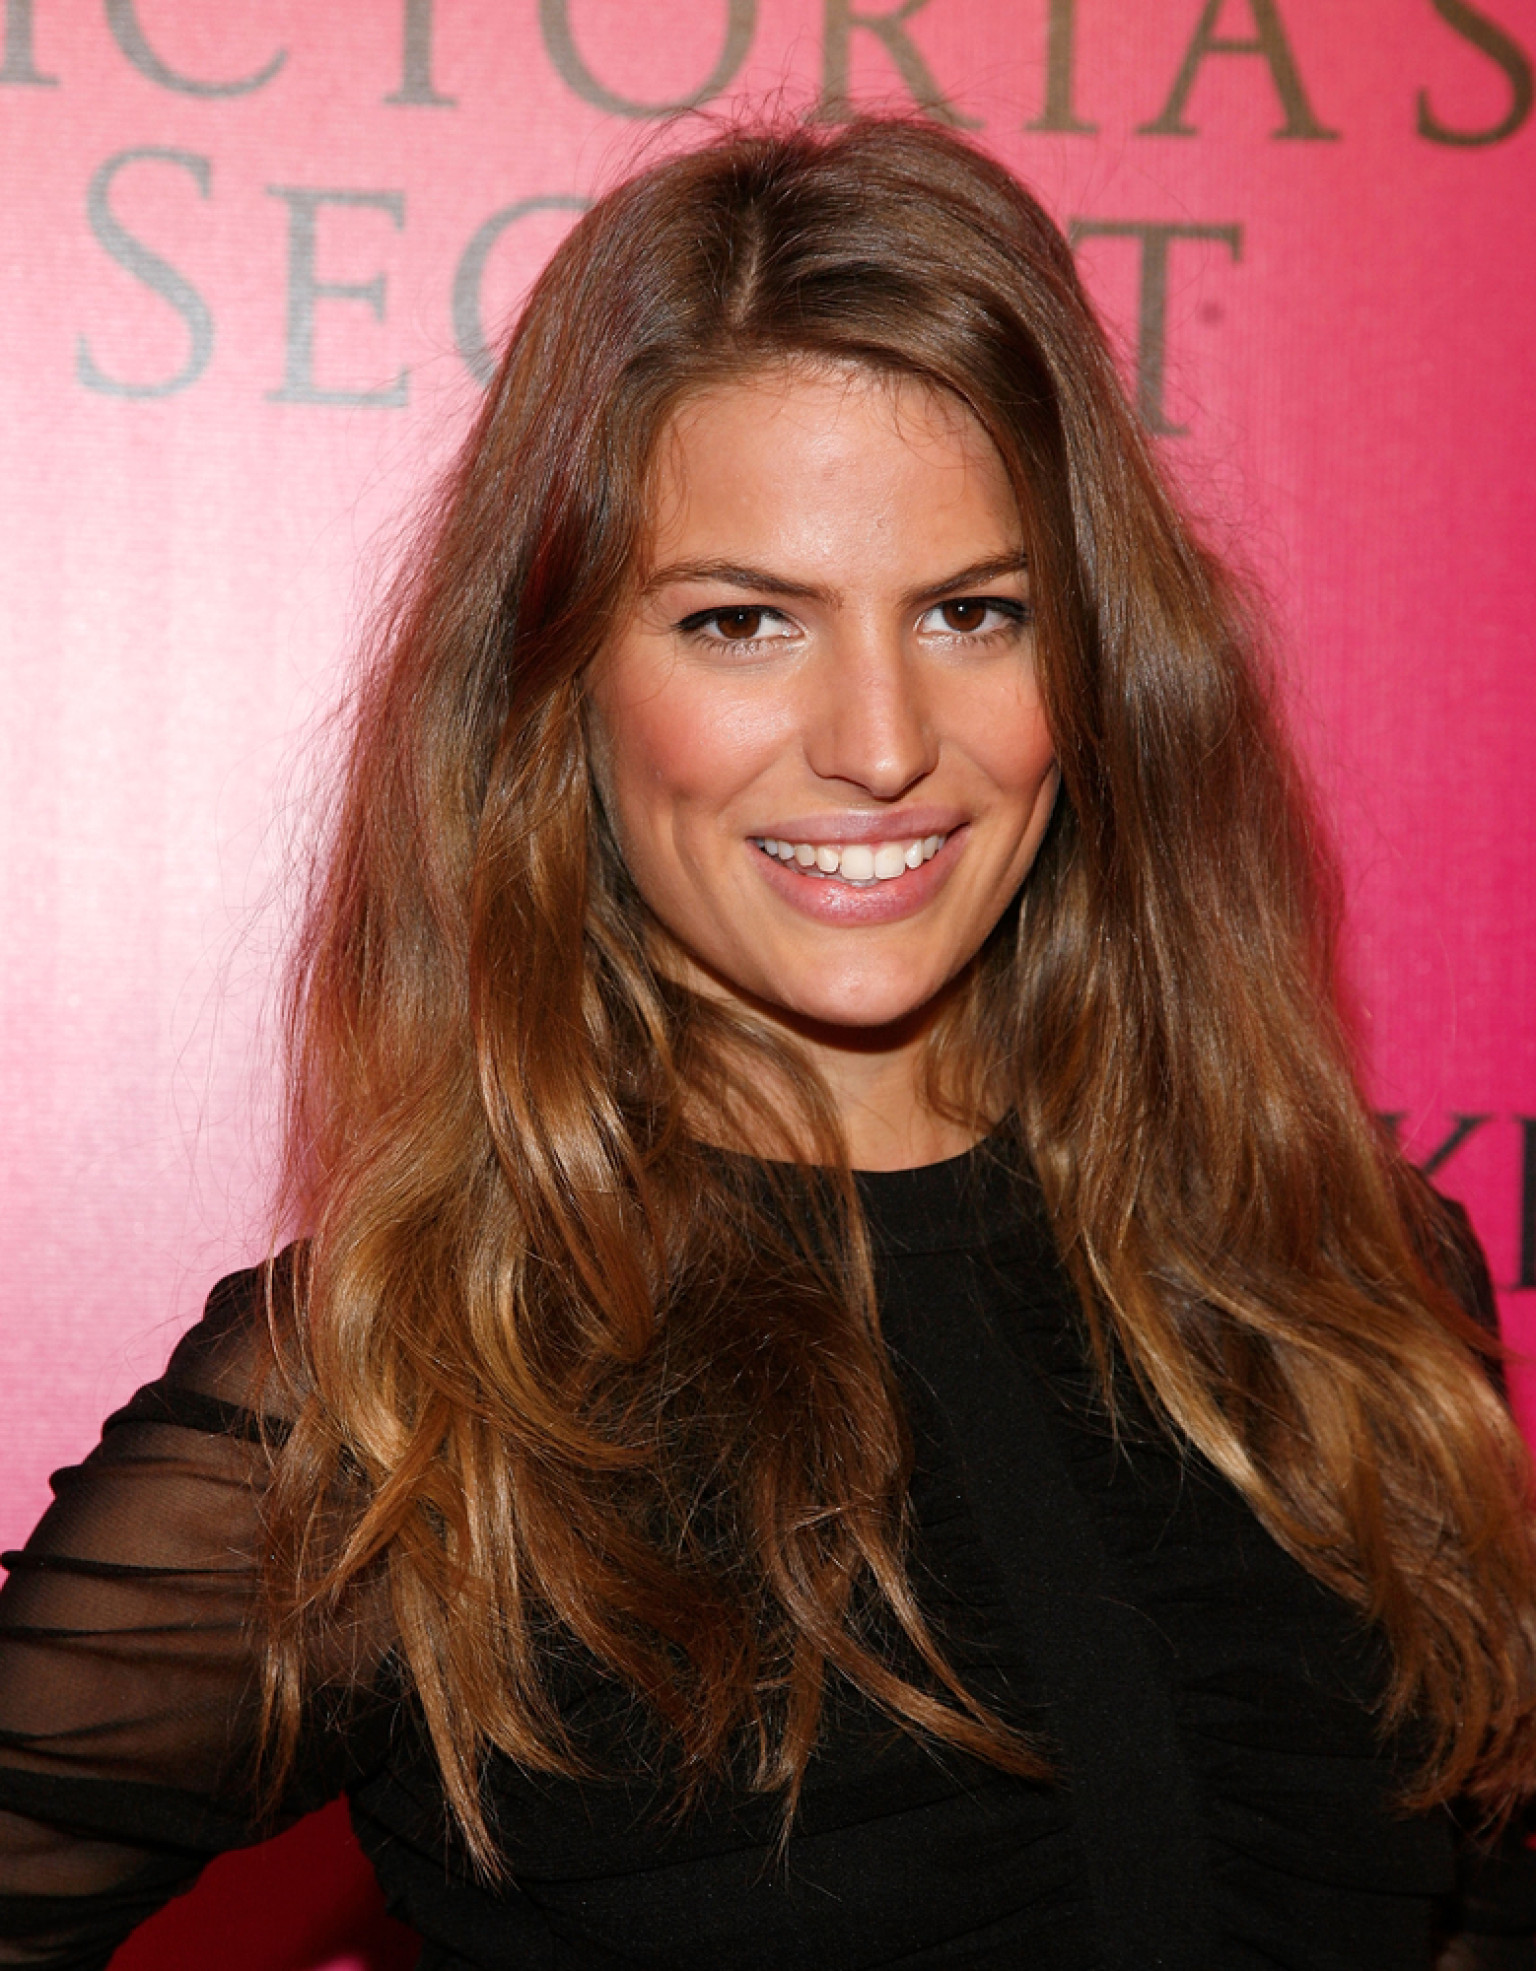 Cameron Russell has been sharing anonymous stories of sexual abuse suffered by models on her Instagram.